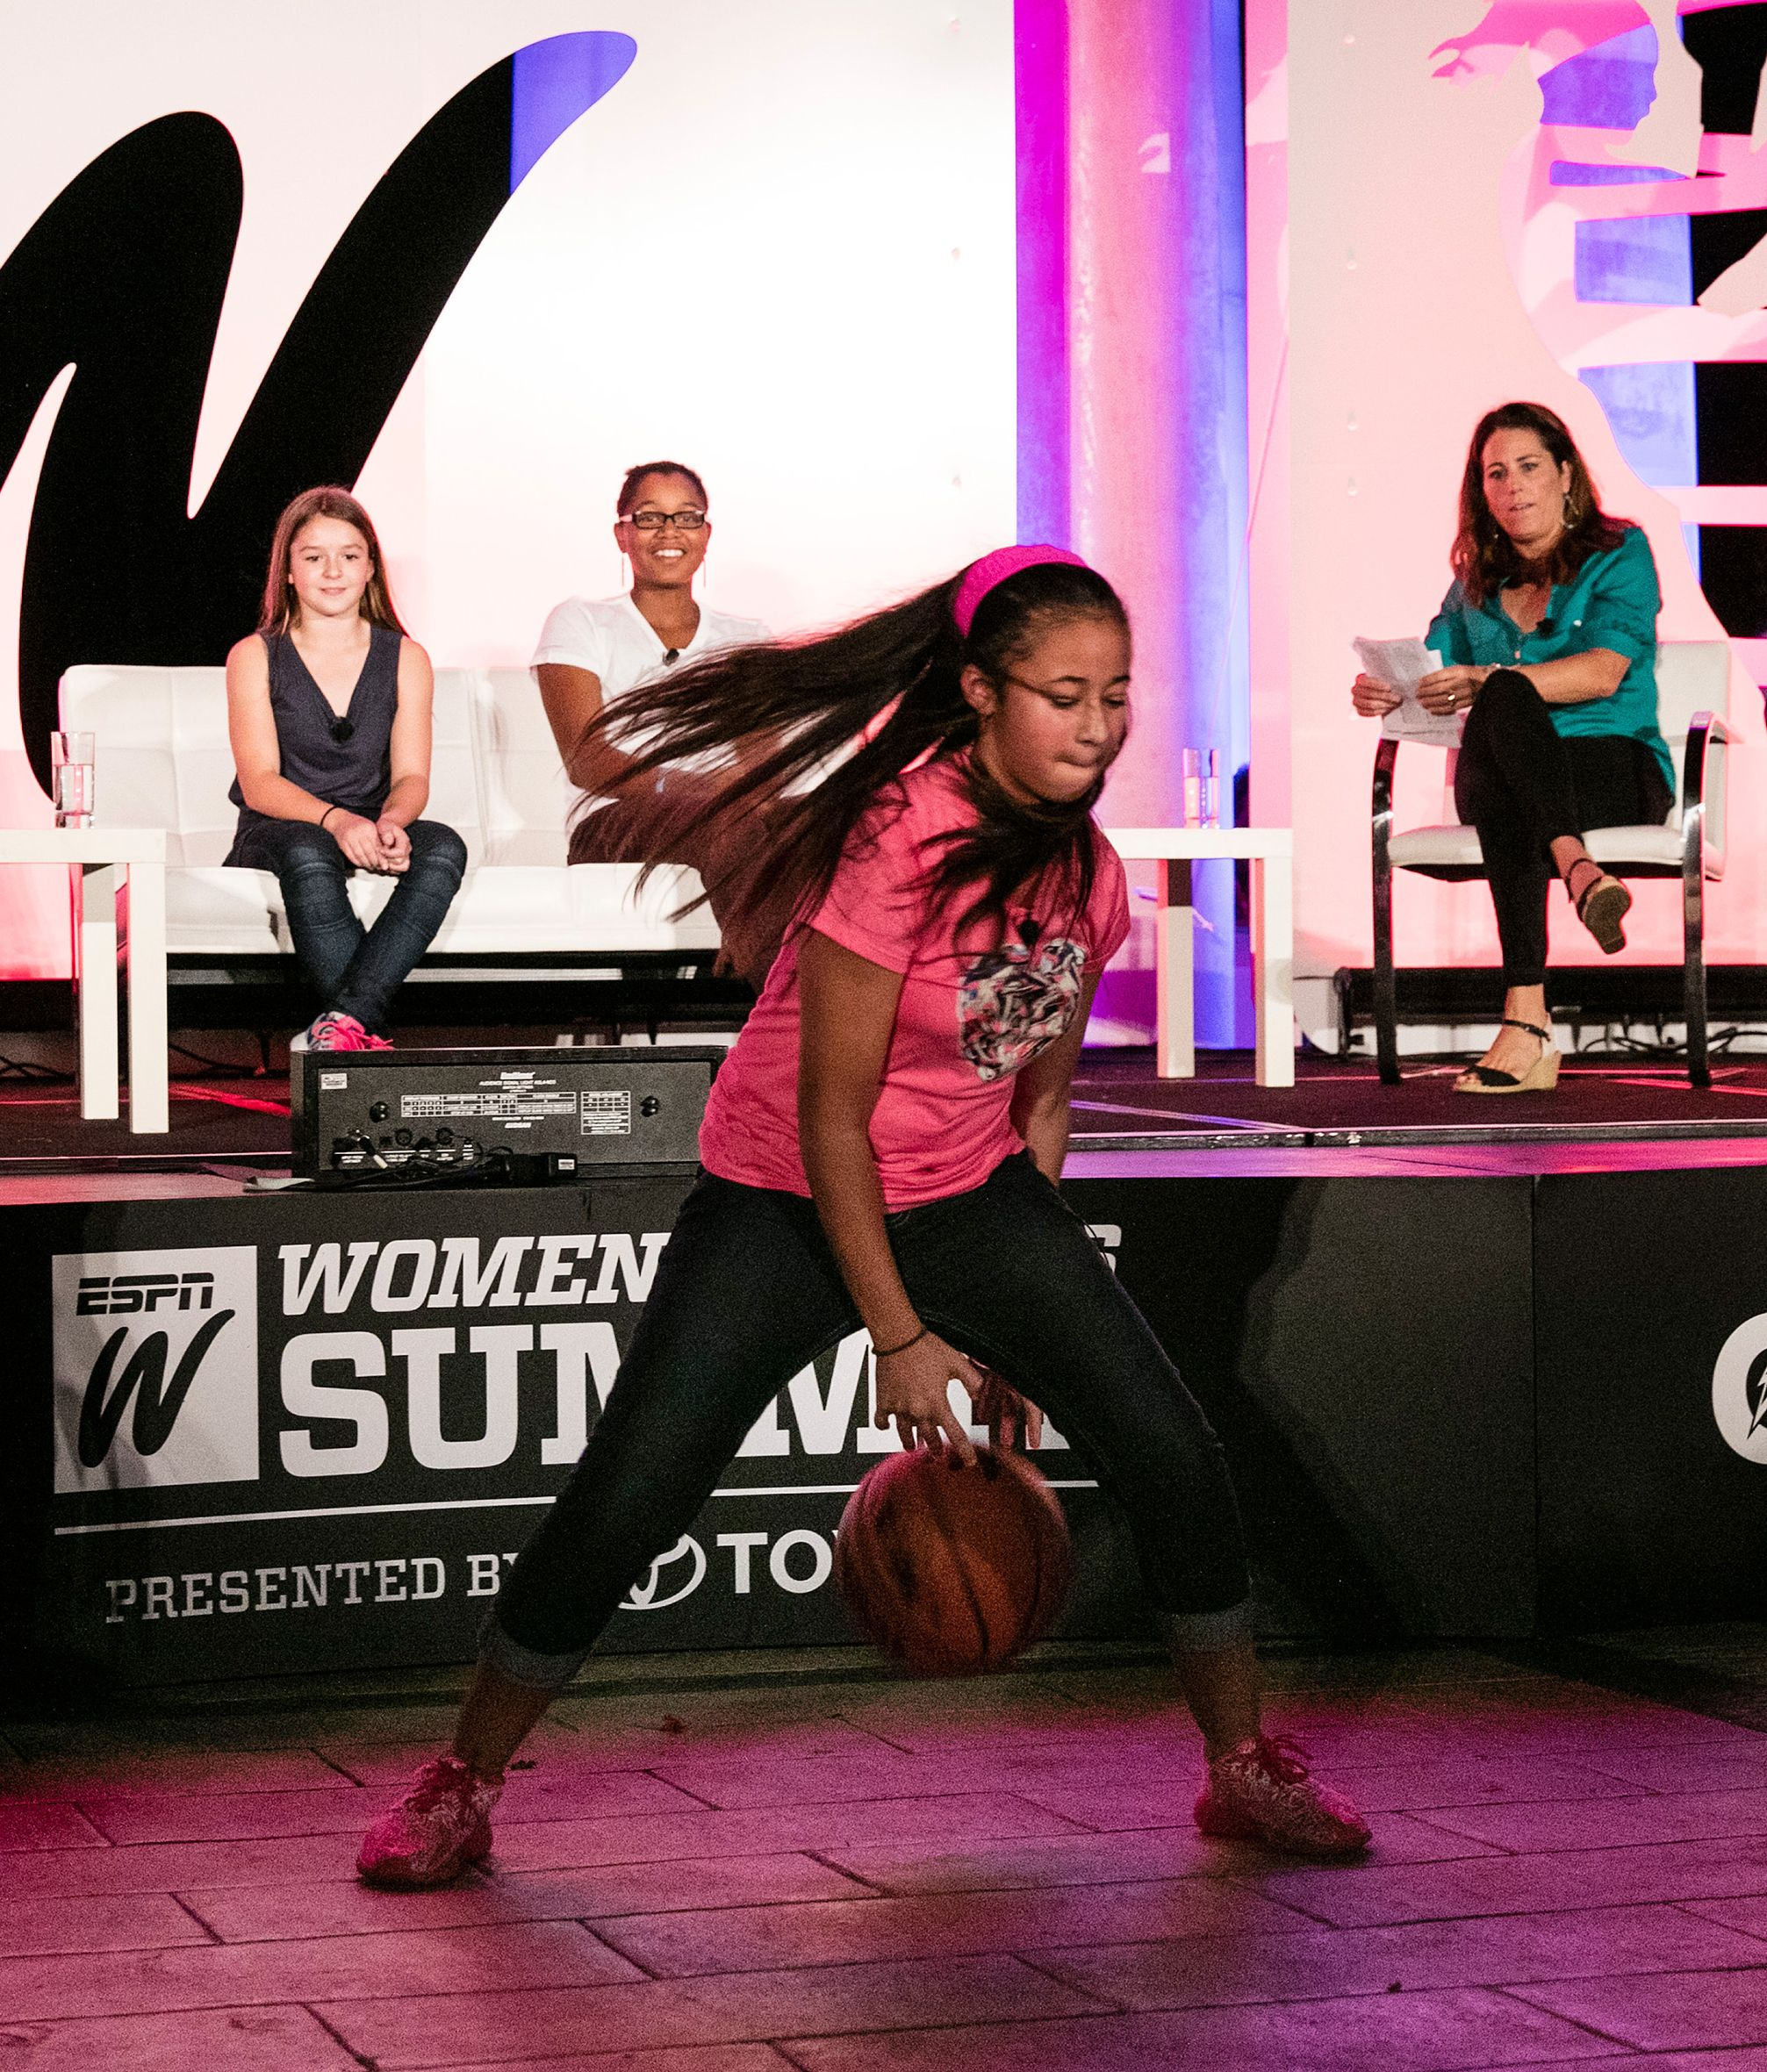 2015 espnW: Women  Sports Summit: Dribble skills